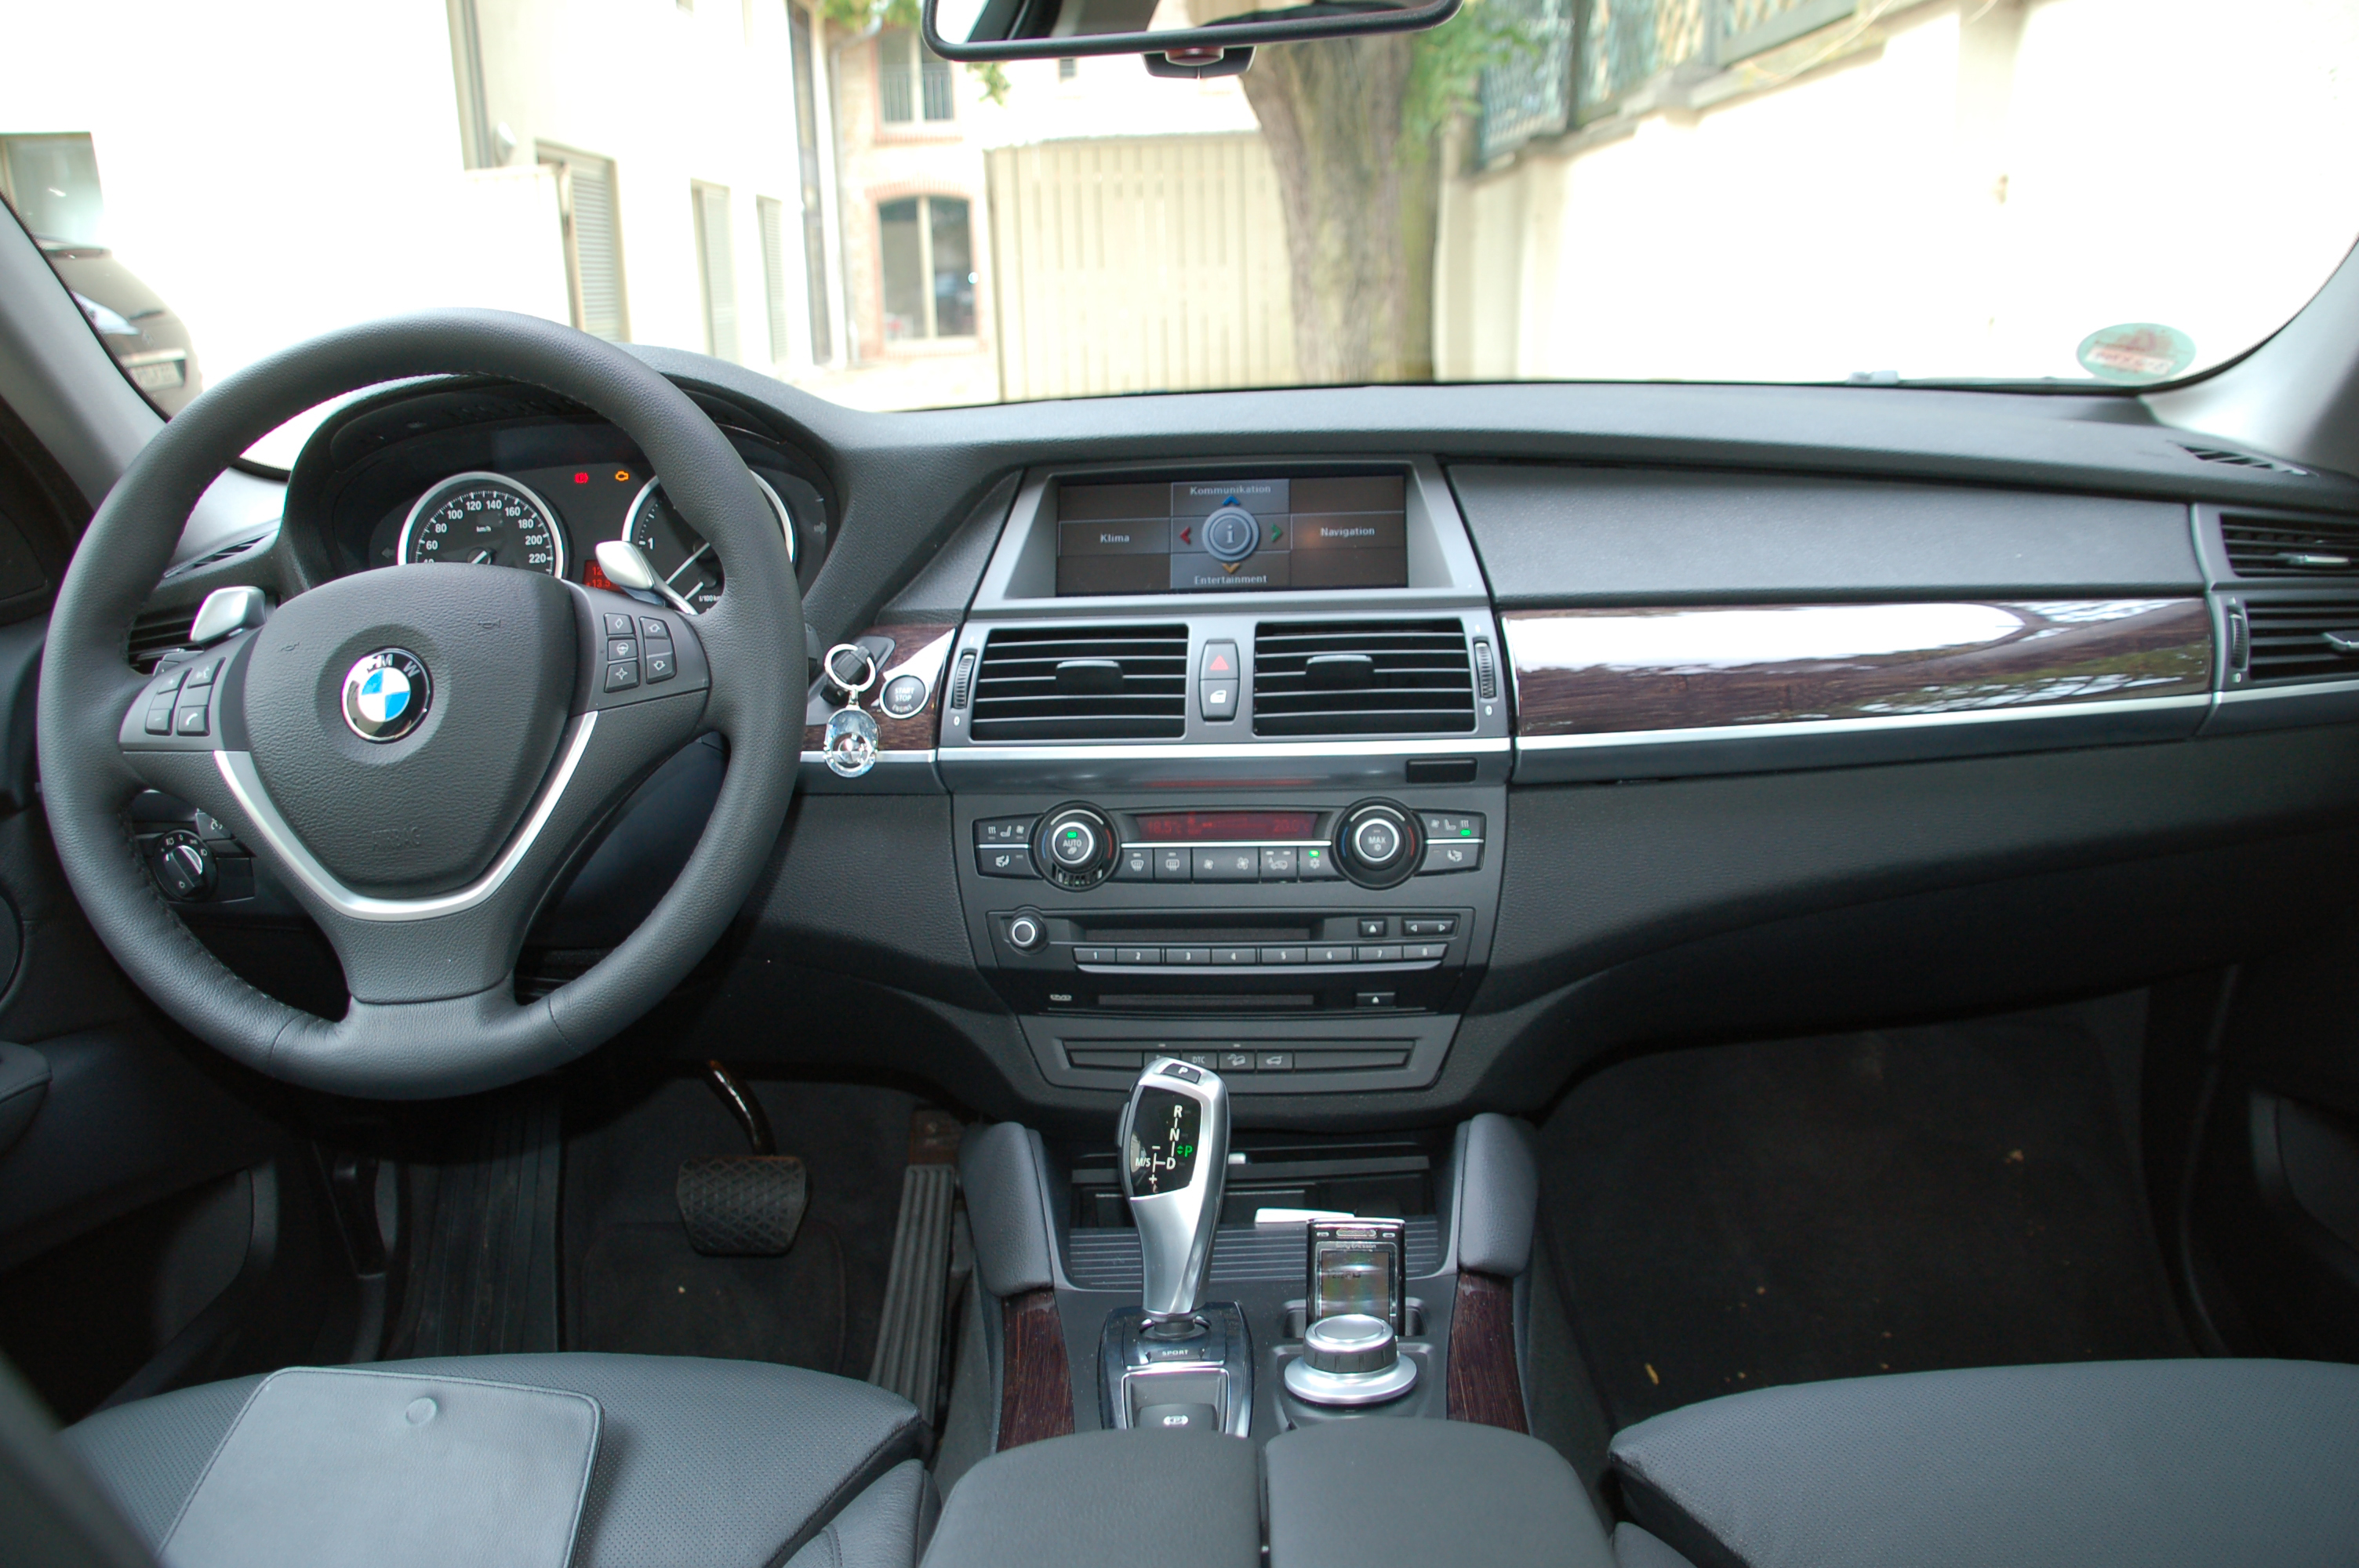 Файл Bmw X6 Xdrive35d Cockpit Jpg Вікіпедія